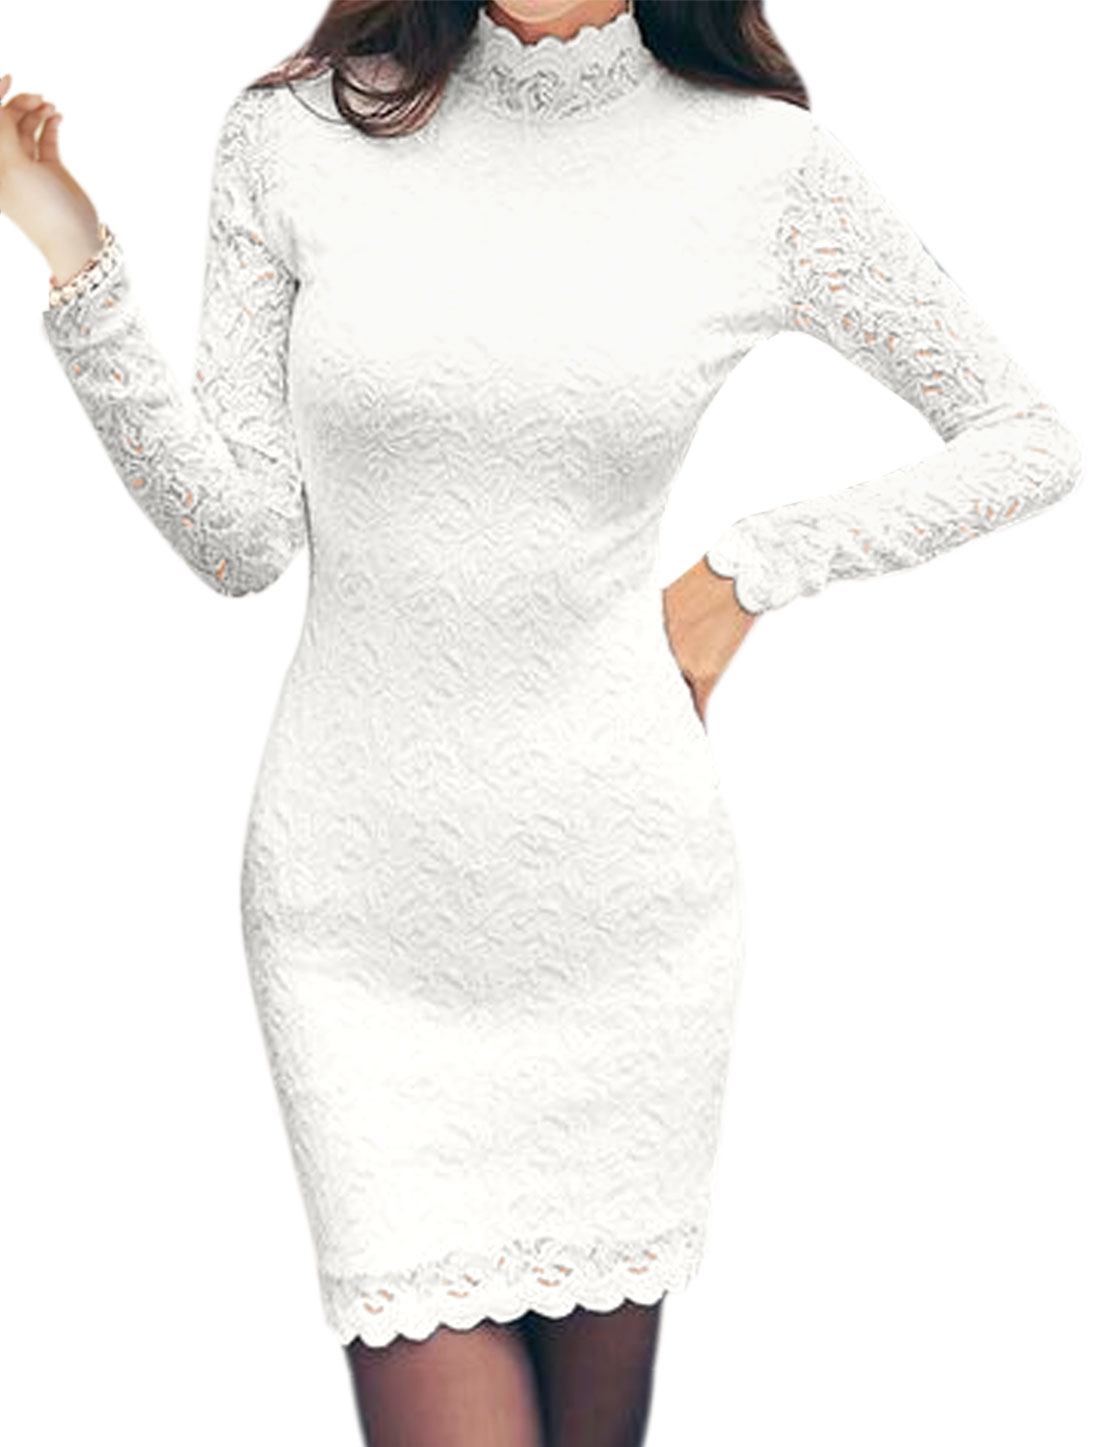 Women Mock Neck Long Sleeves Floral Lace Wiggle Dress White S